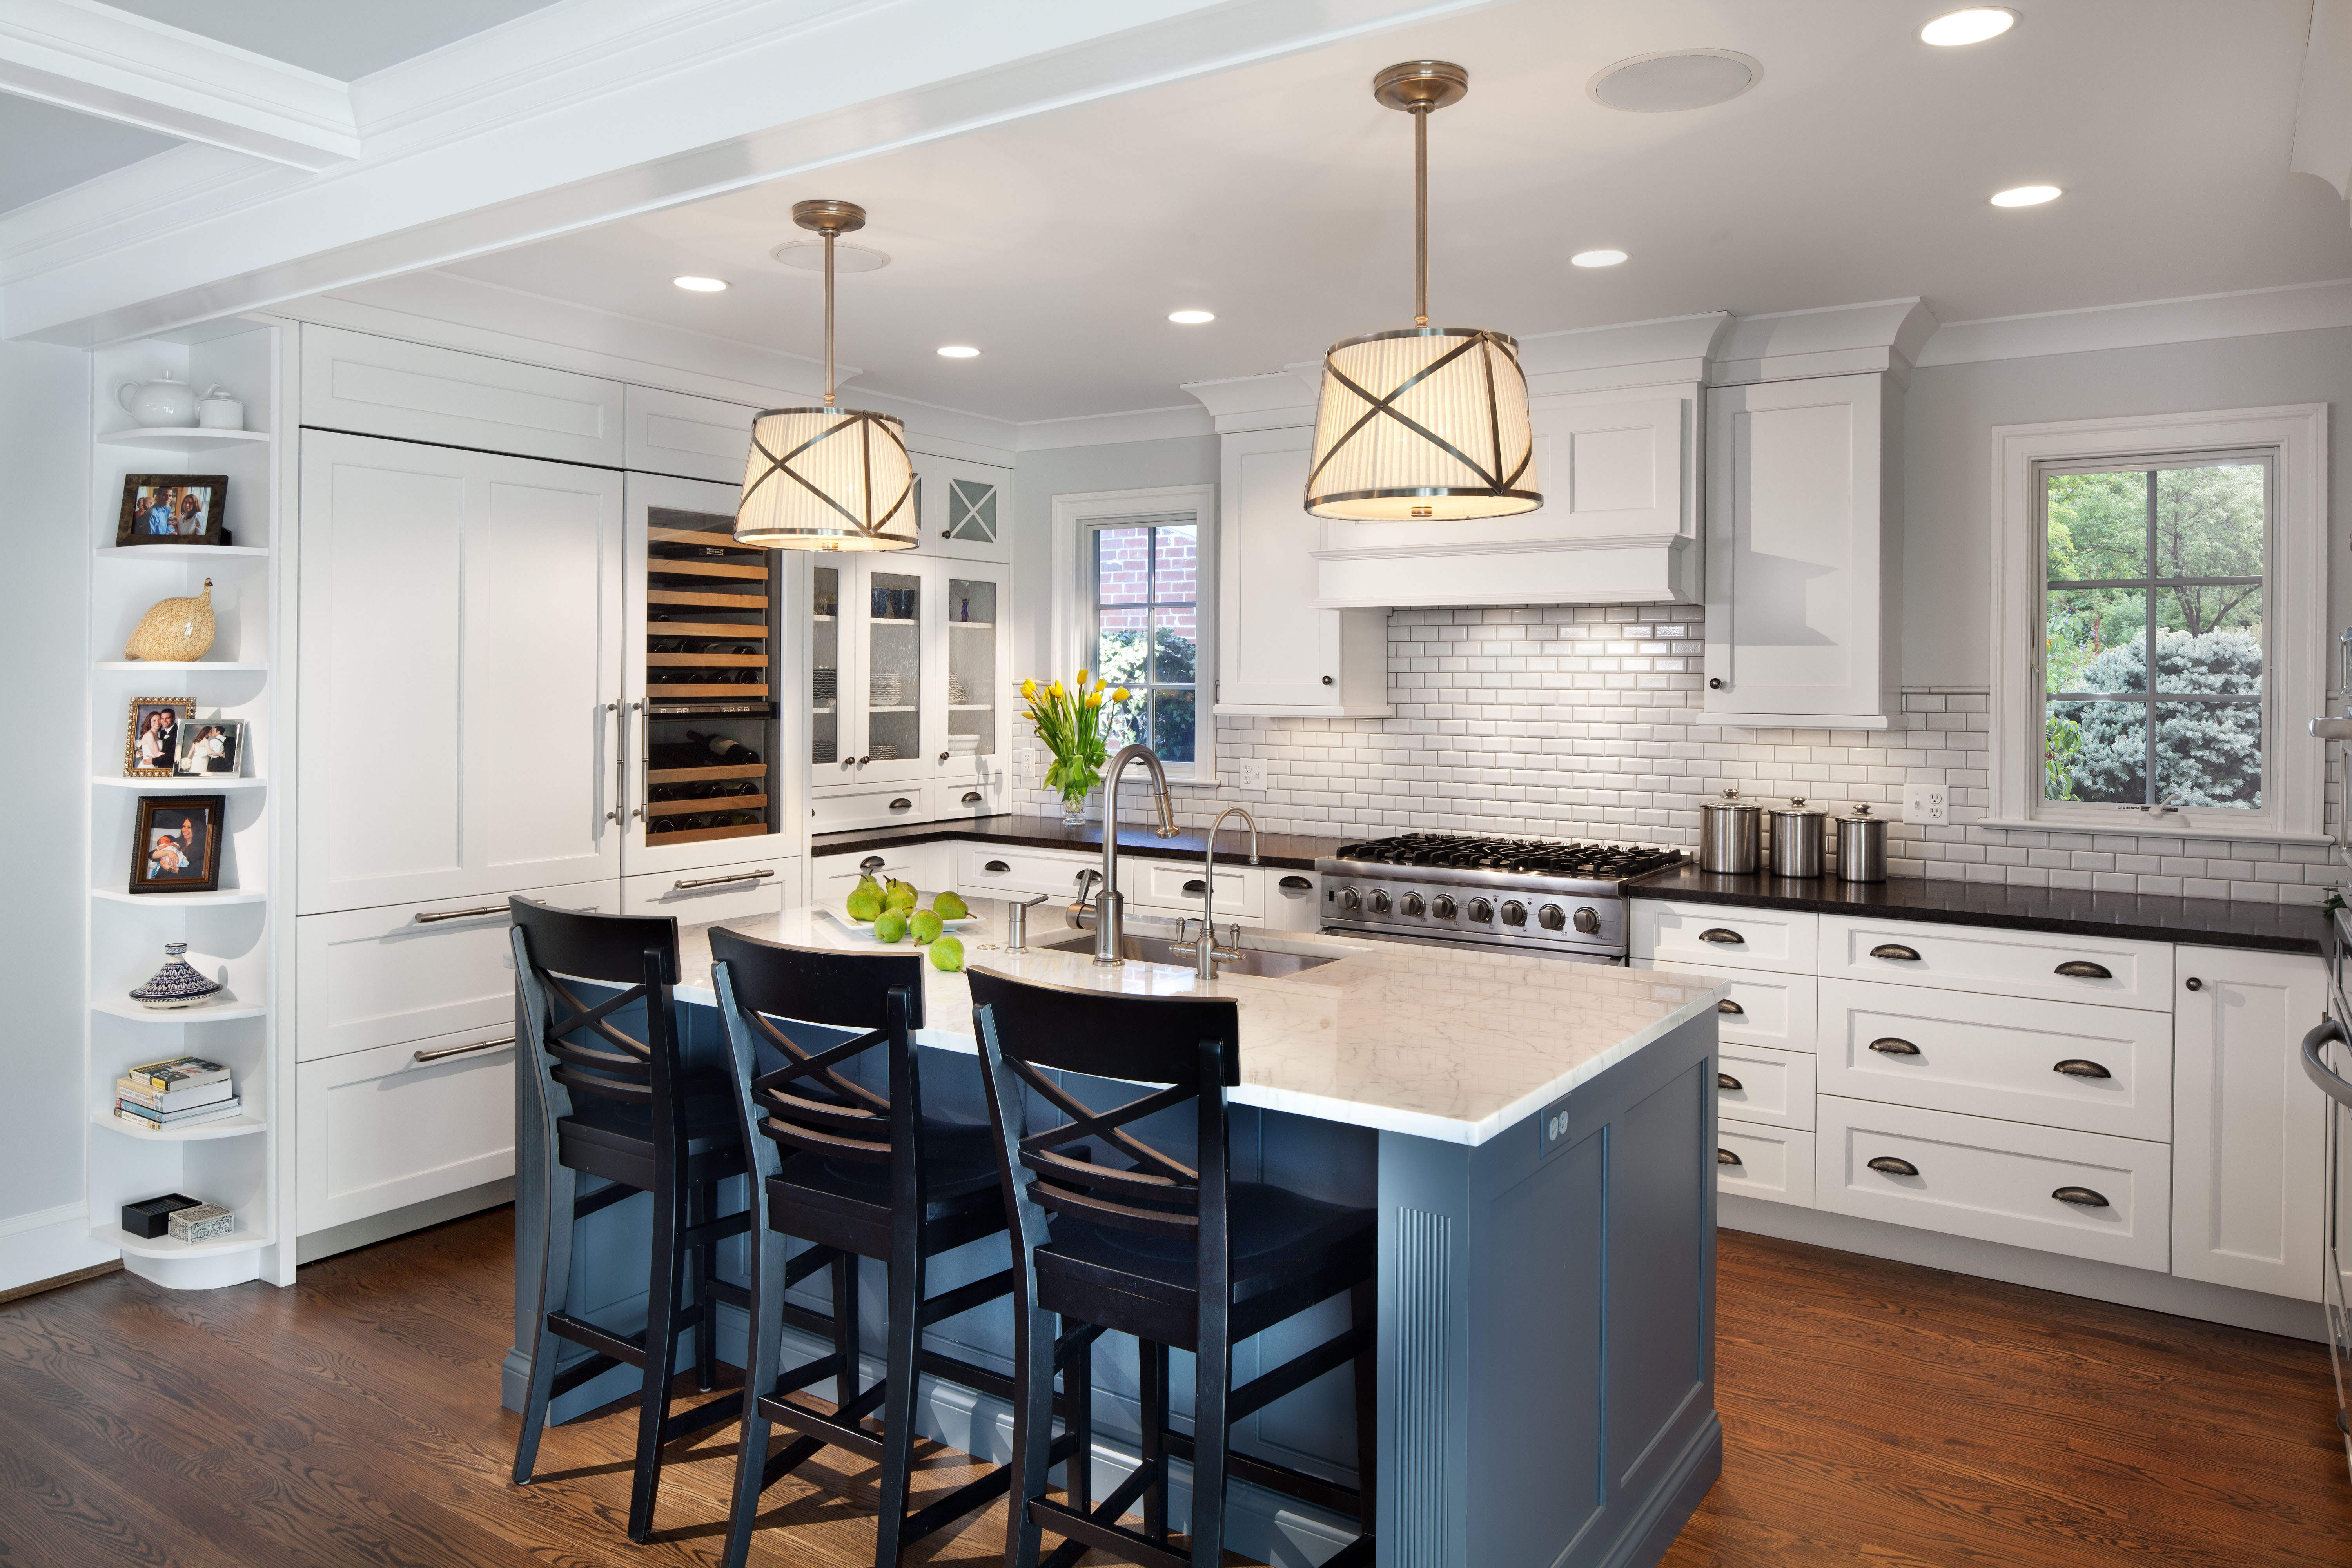 How Expert Kitchen Renovation Cures the Many Headaches of Your Outdated Kitchen